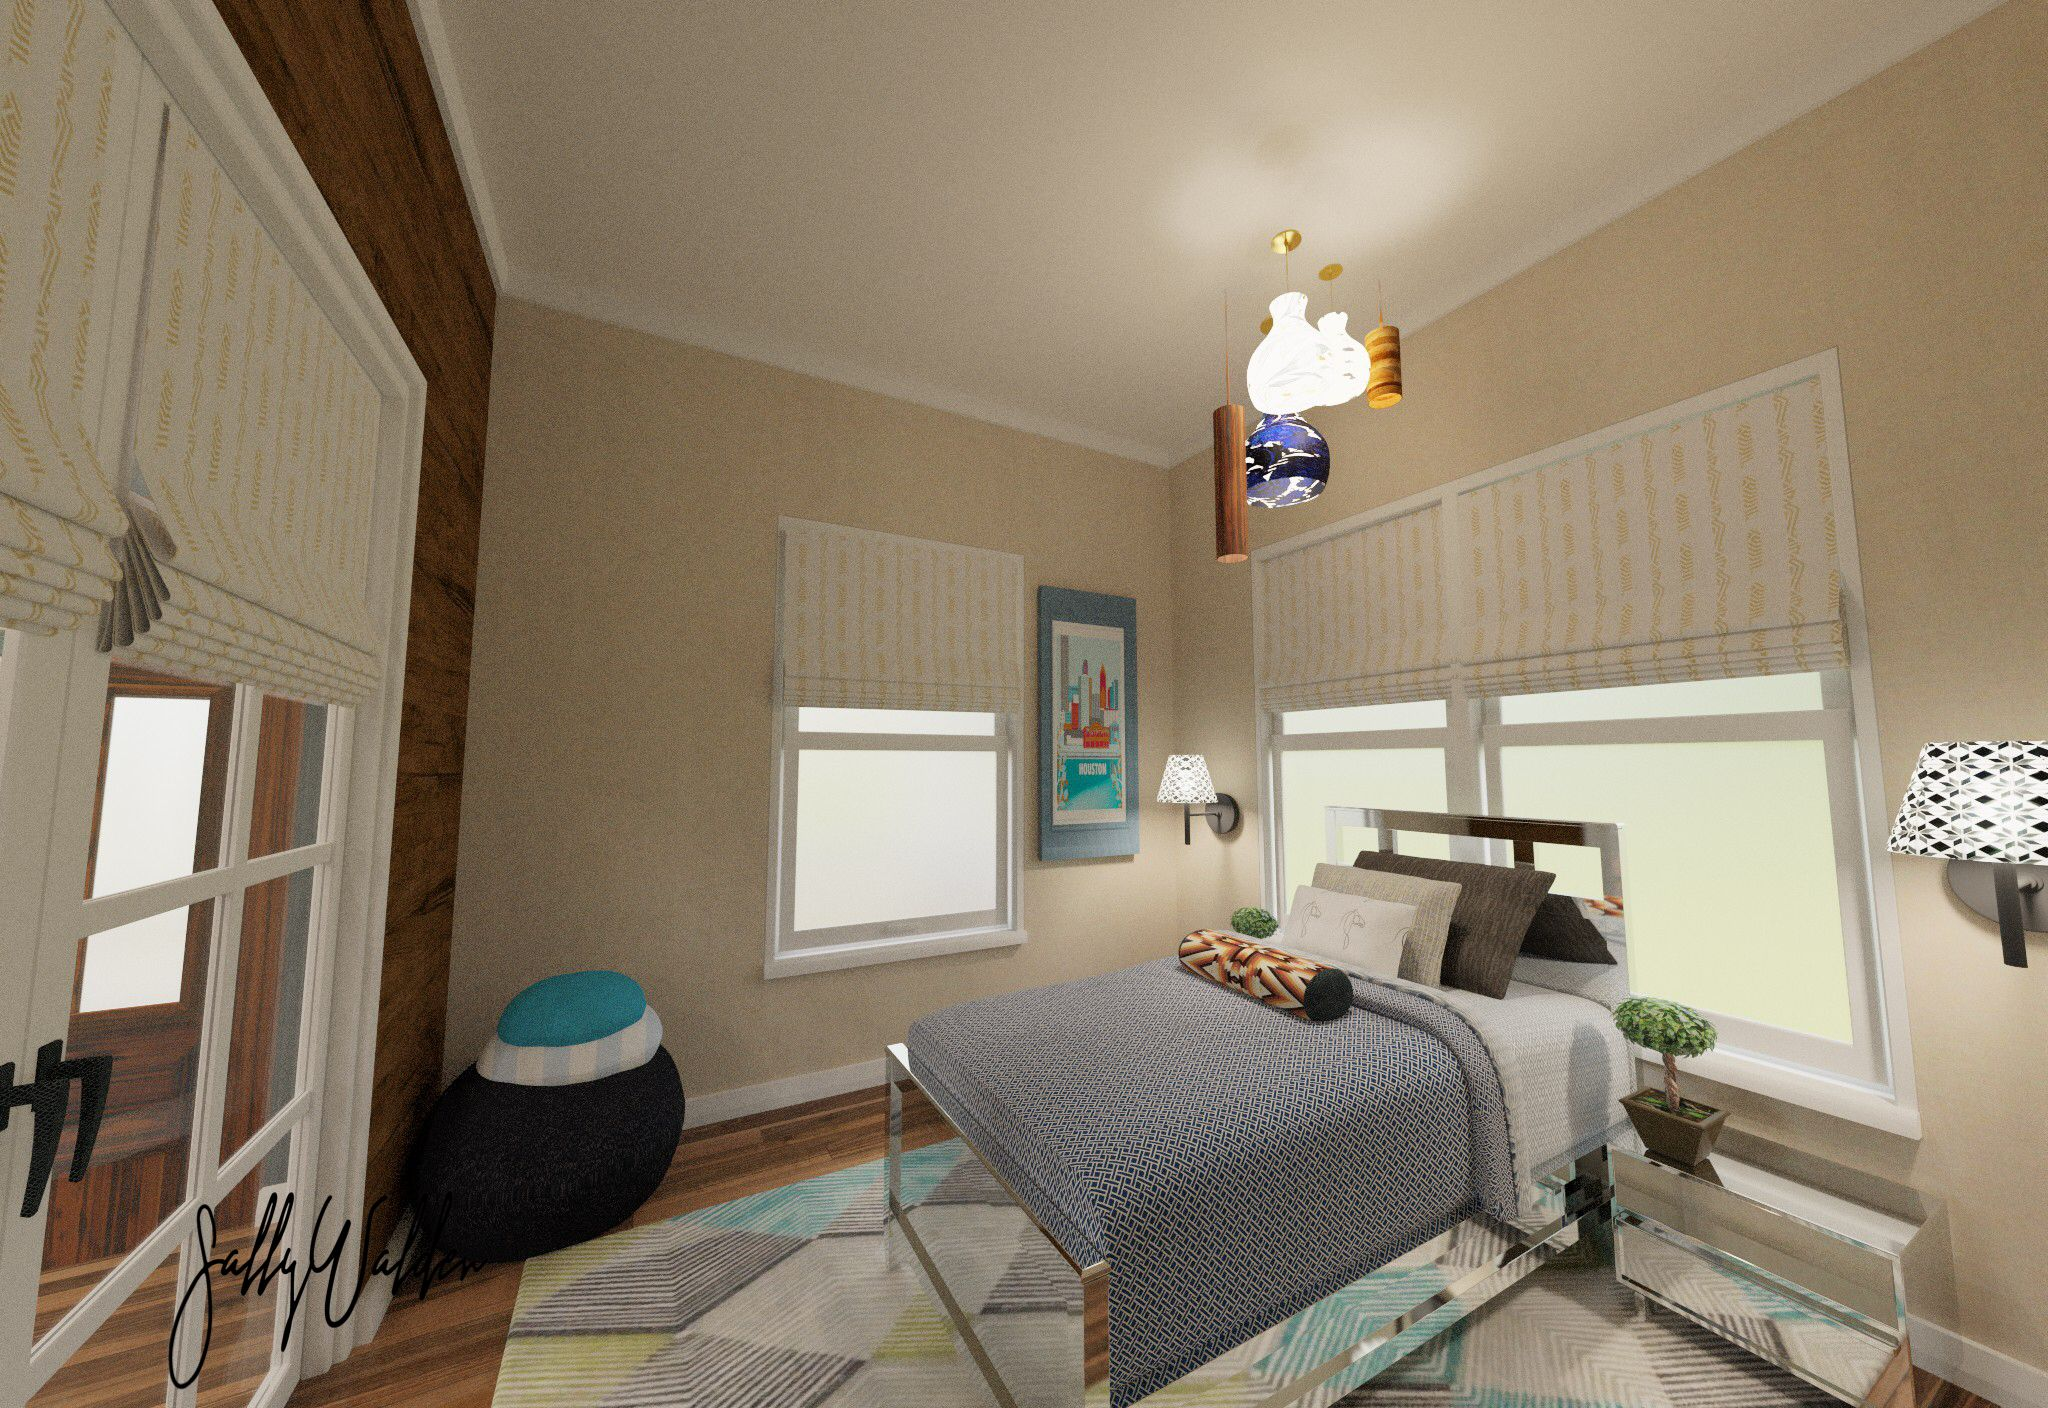 tapglance design realestate (With